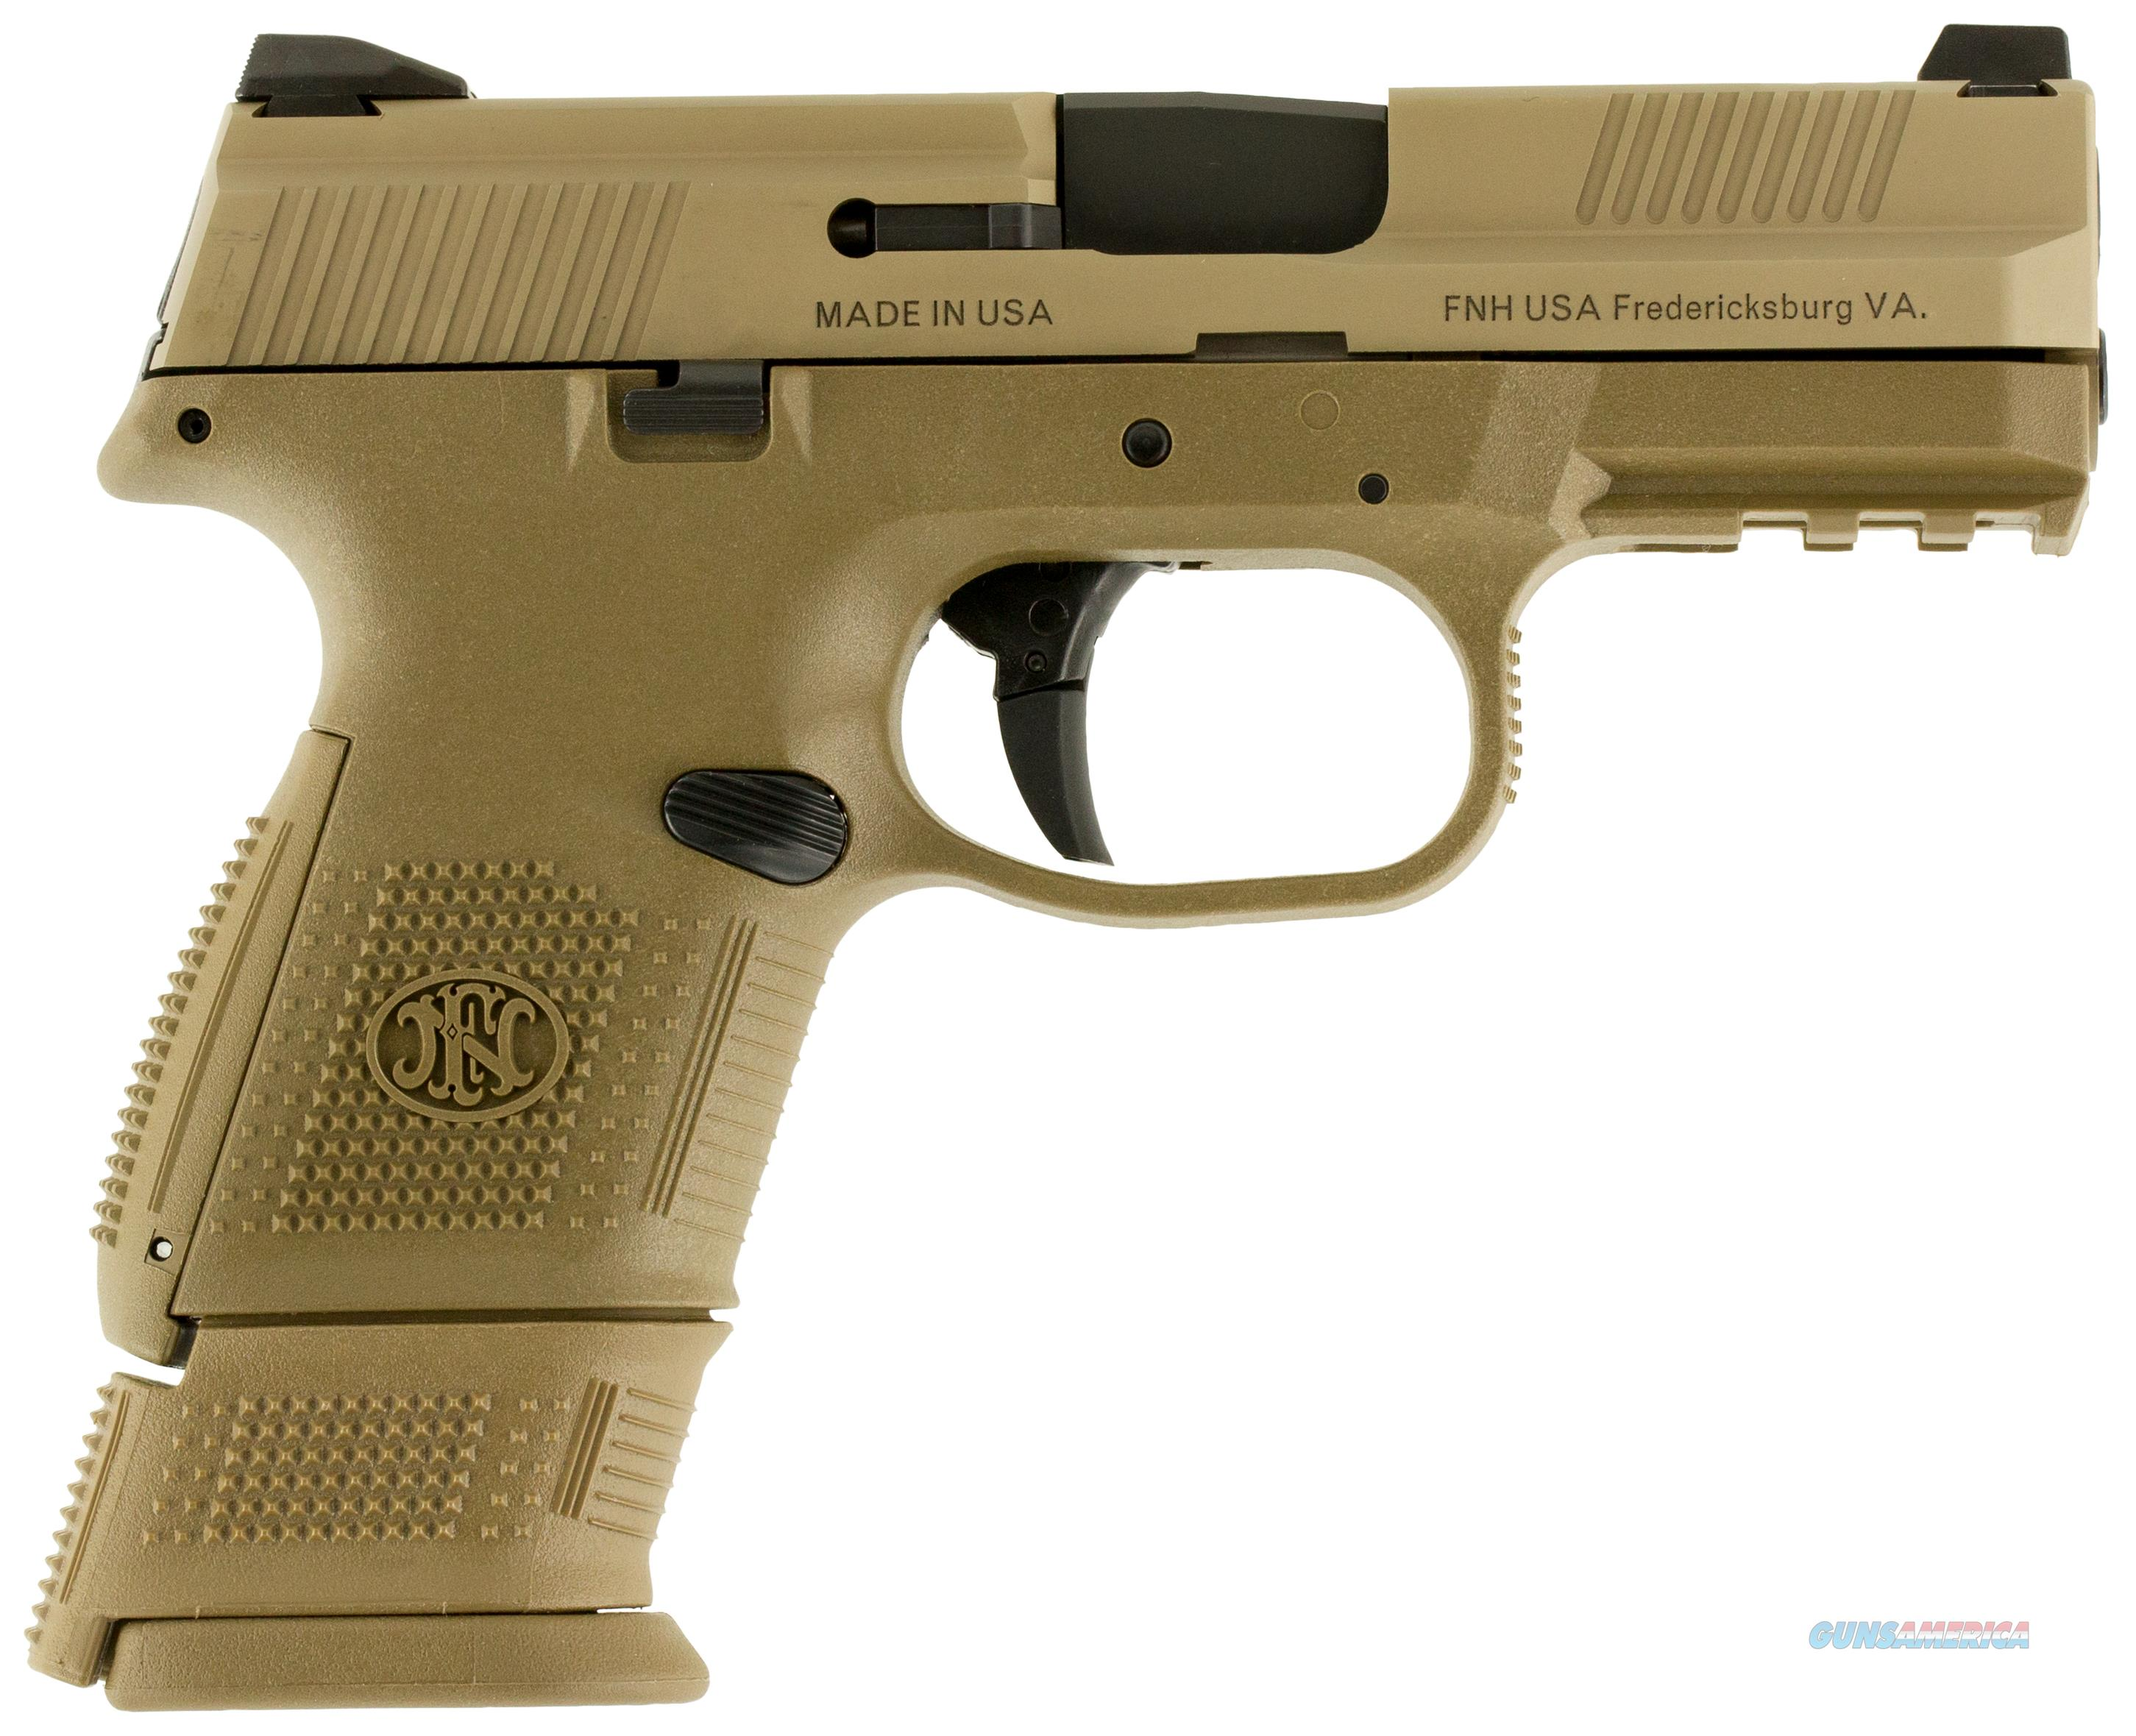 FNS-9c Compact 9mm FDE 12+1 and 17+1 Magazines Free Shipping   Guns > Pistols > FNH - Fabrique Nationale (FN) Pistols > FNS